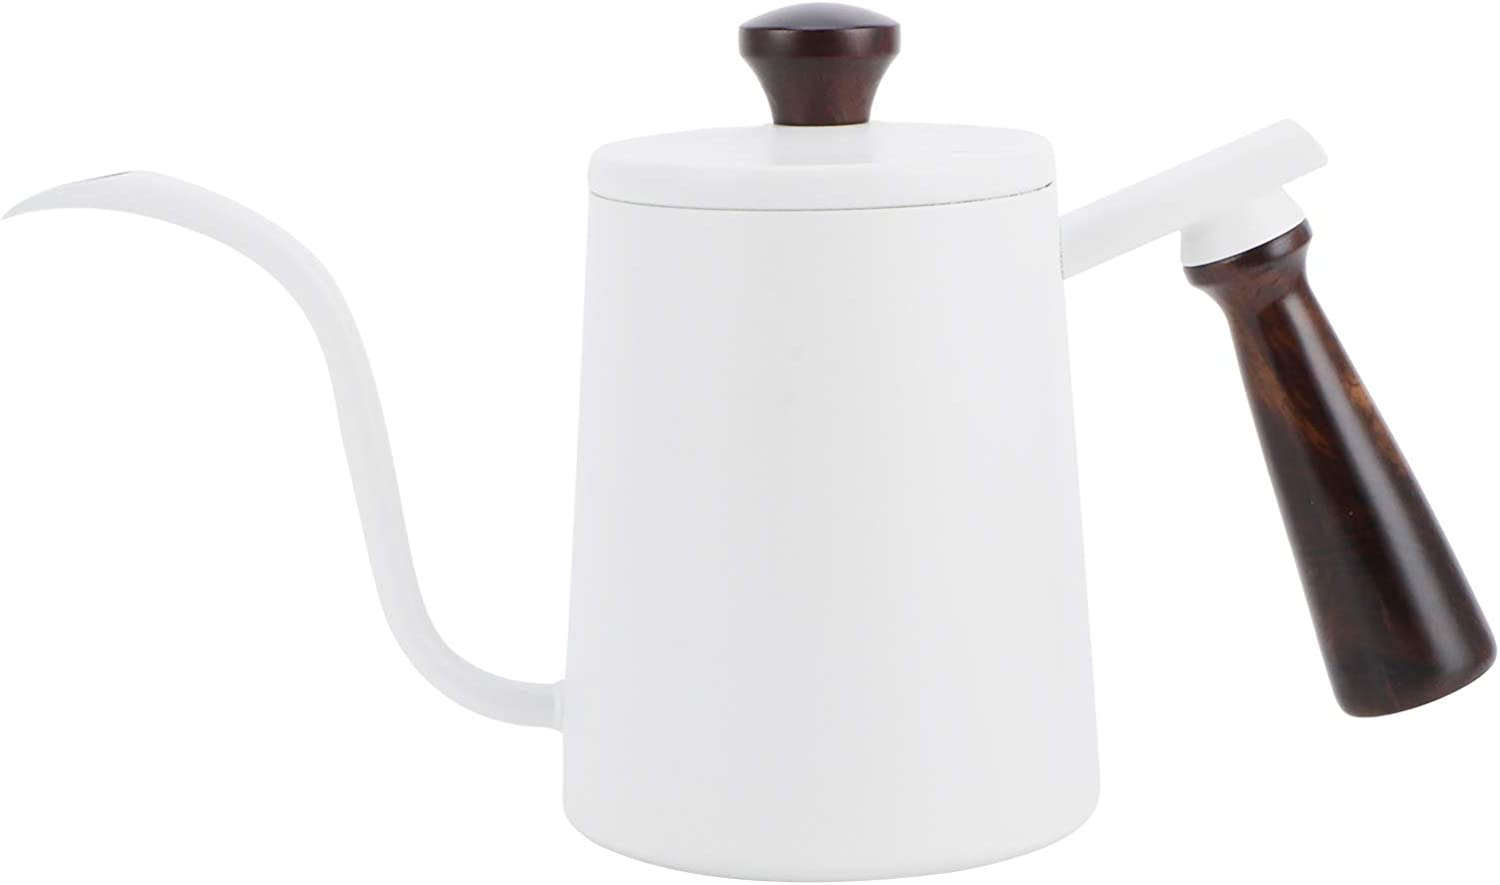 Drip Kettle - Challenge the lowest price 700ml Hand Coffee Steel Pot Stainless 304 Lon Ranking TOP9